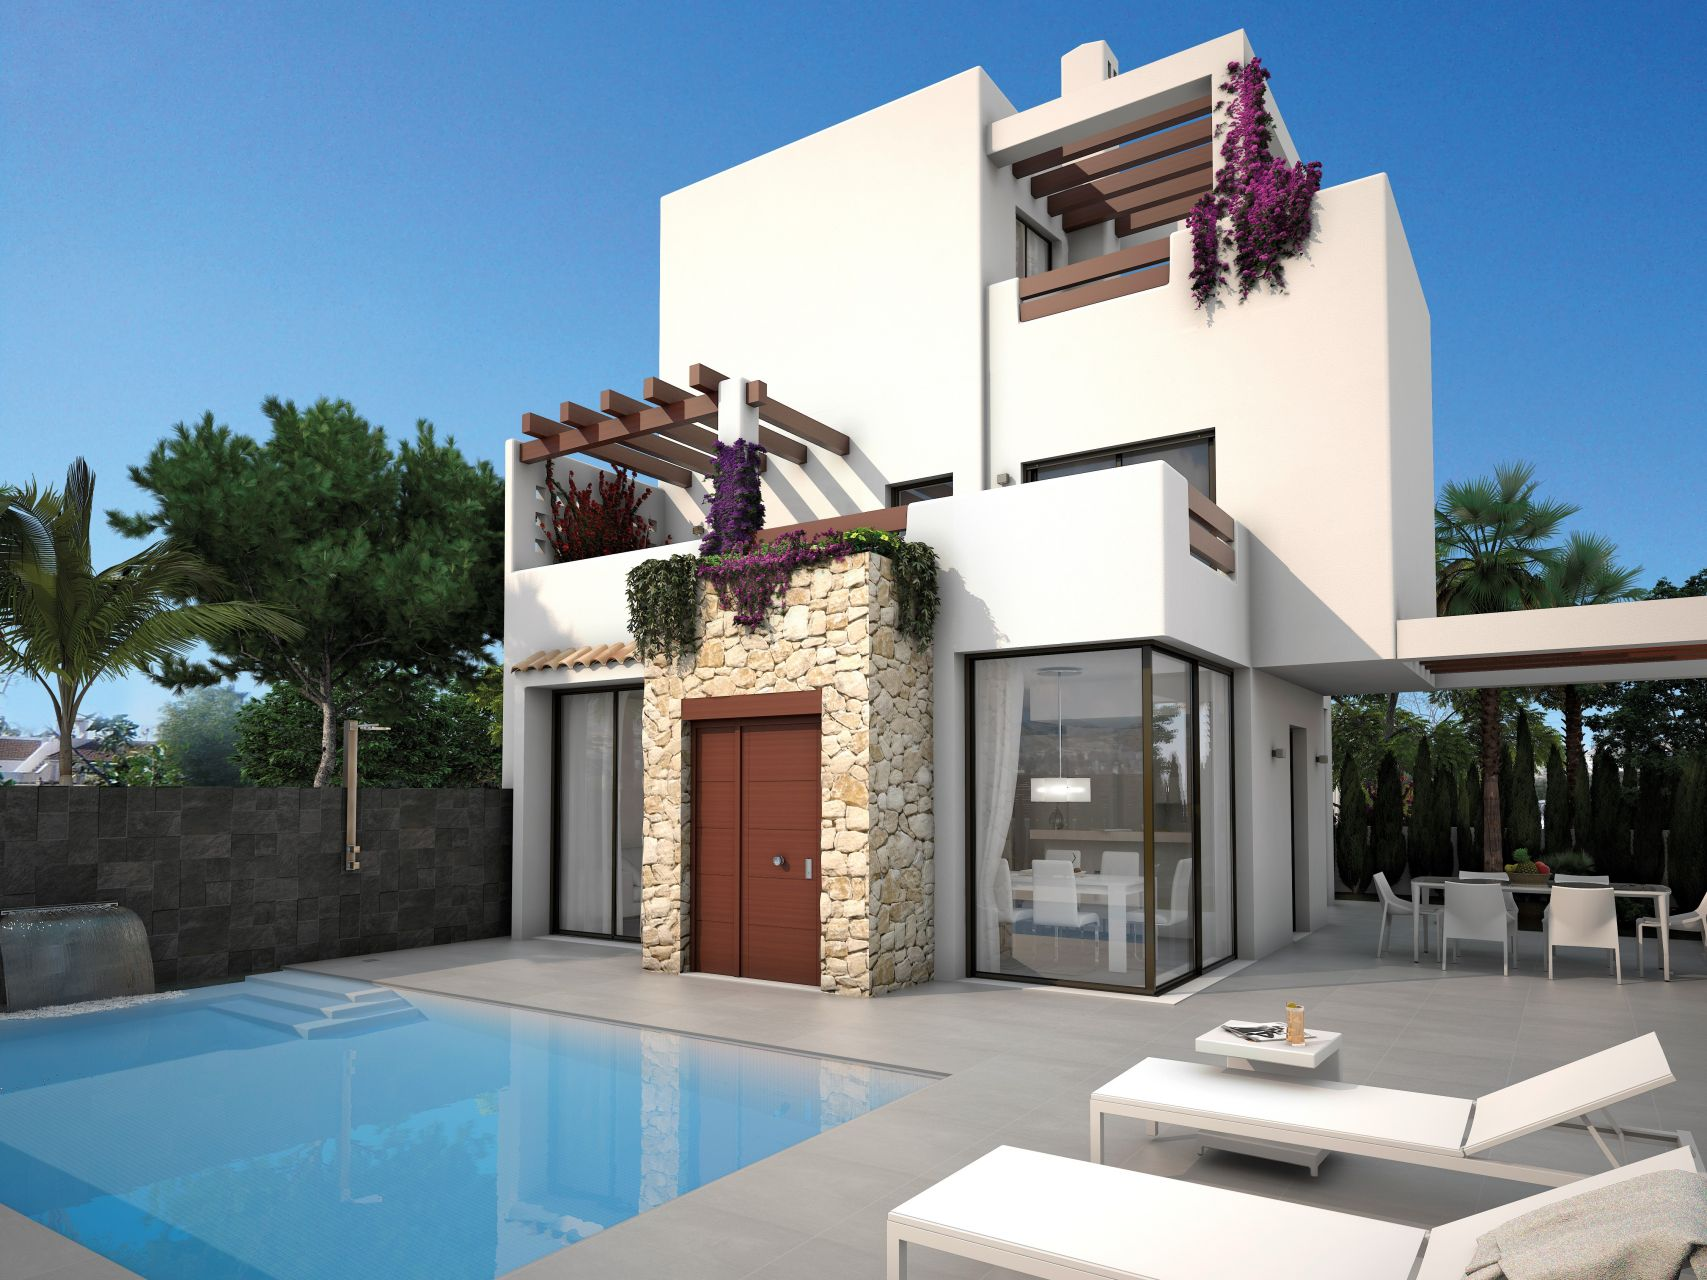 3 bedroom and 3 bathroom villa with pool 1